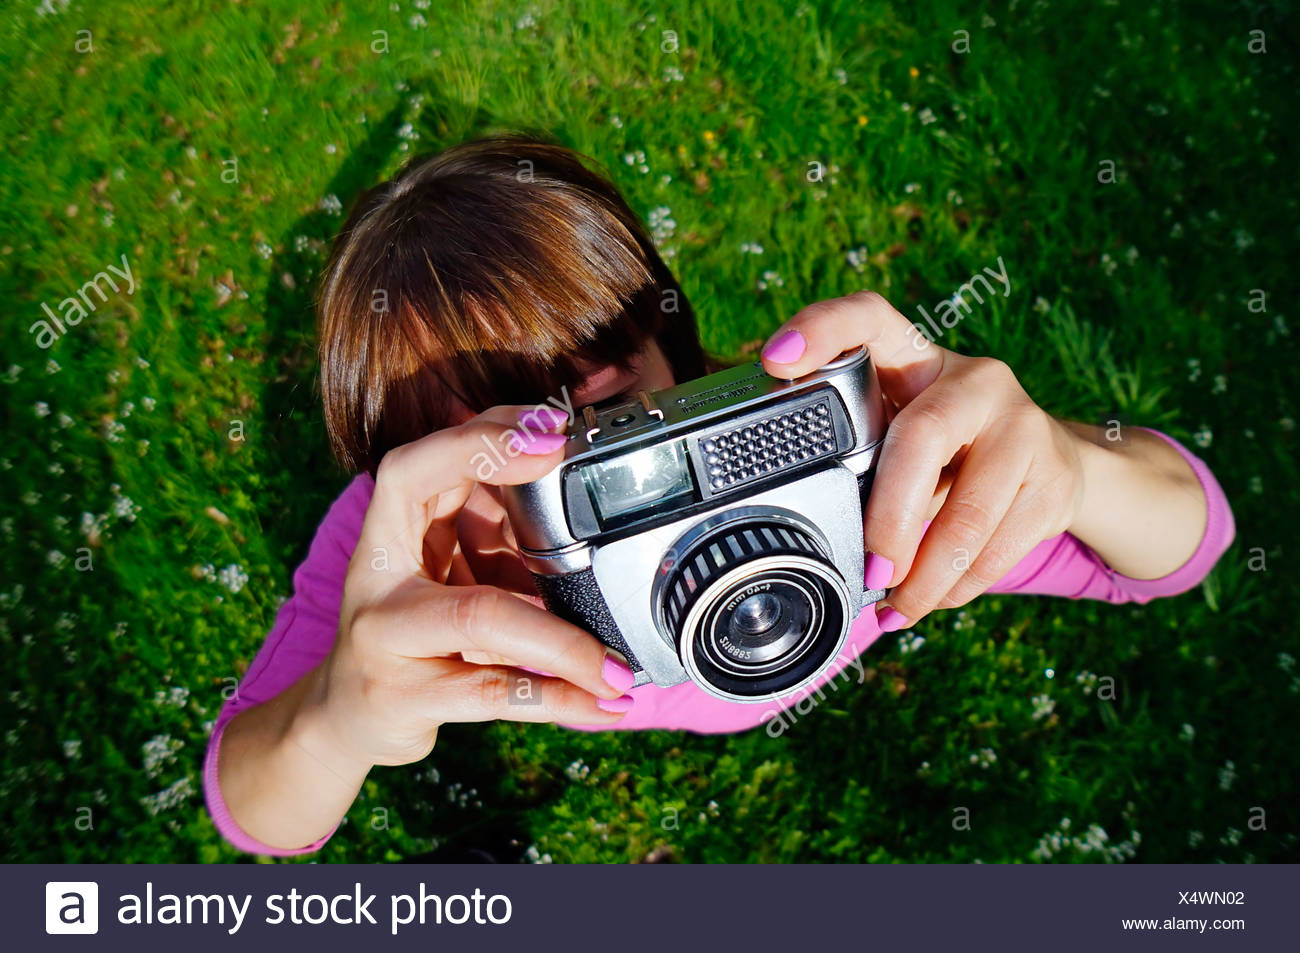 Woman photographing with old camera, fisheye lens - Stock Image